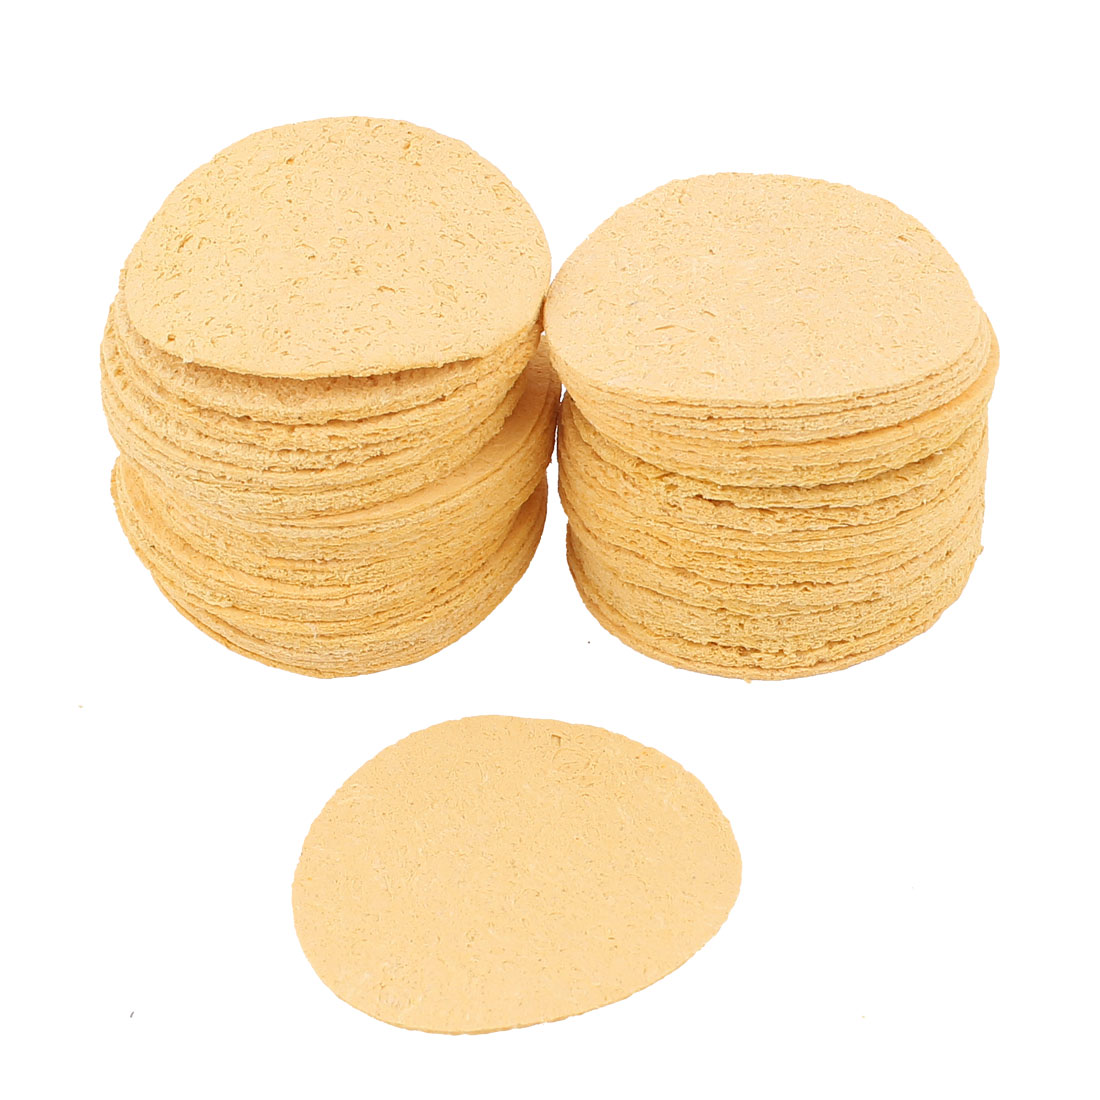 50pcs 50mm Dia Round Soldering Solder Iron Tip Replacement Sponges Welding Cleaning Pads Yellow